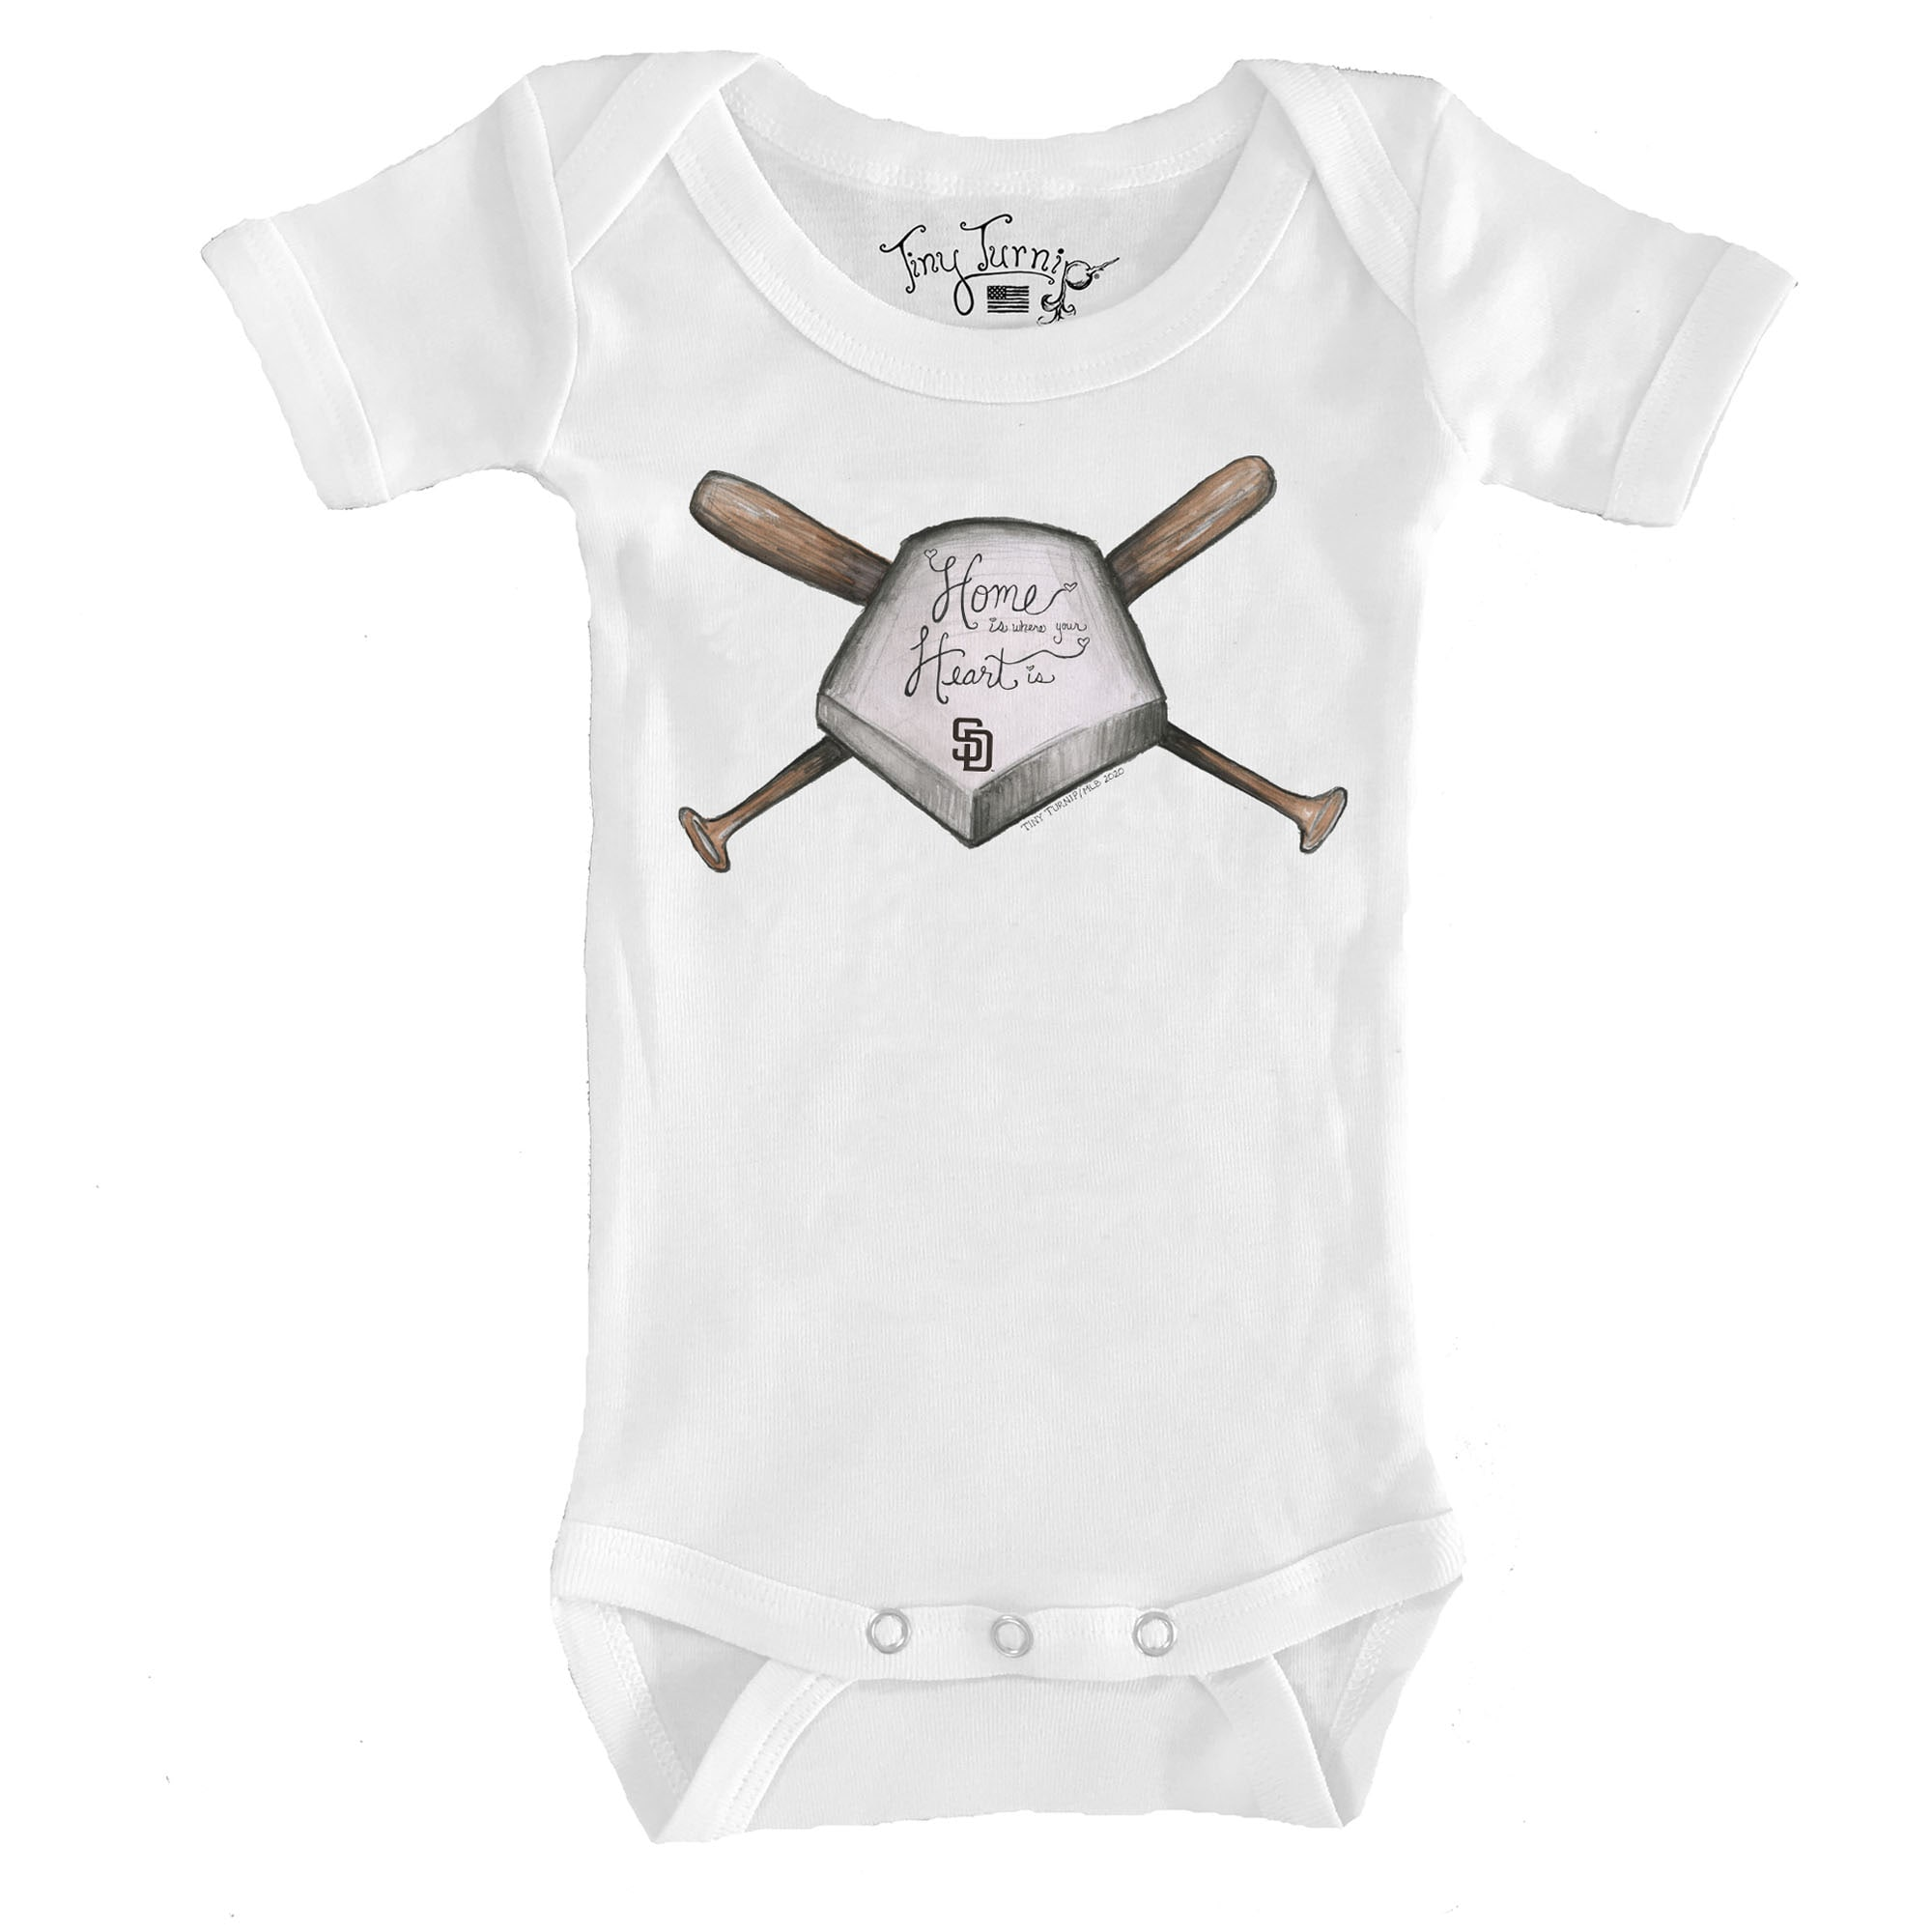 San Diego Padres Tiny Turnip Infant Home Is Where Your Heart Is Bodysuit - White